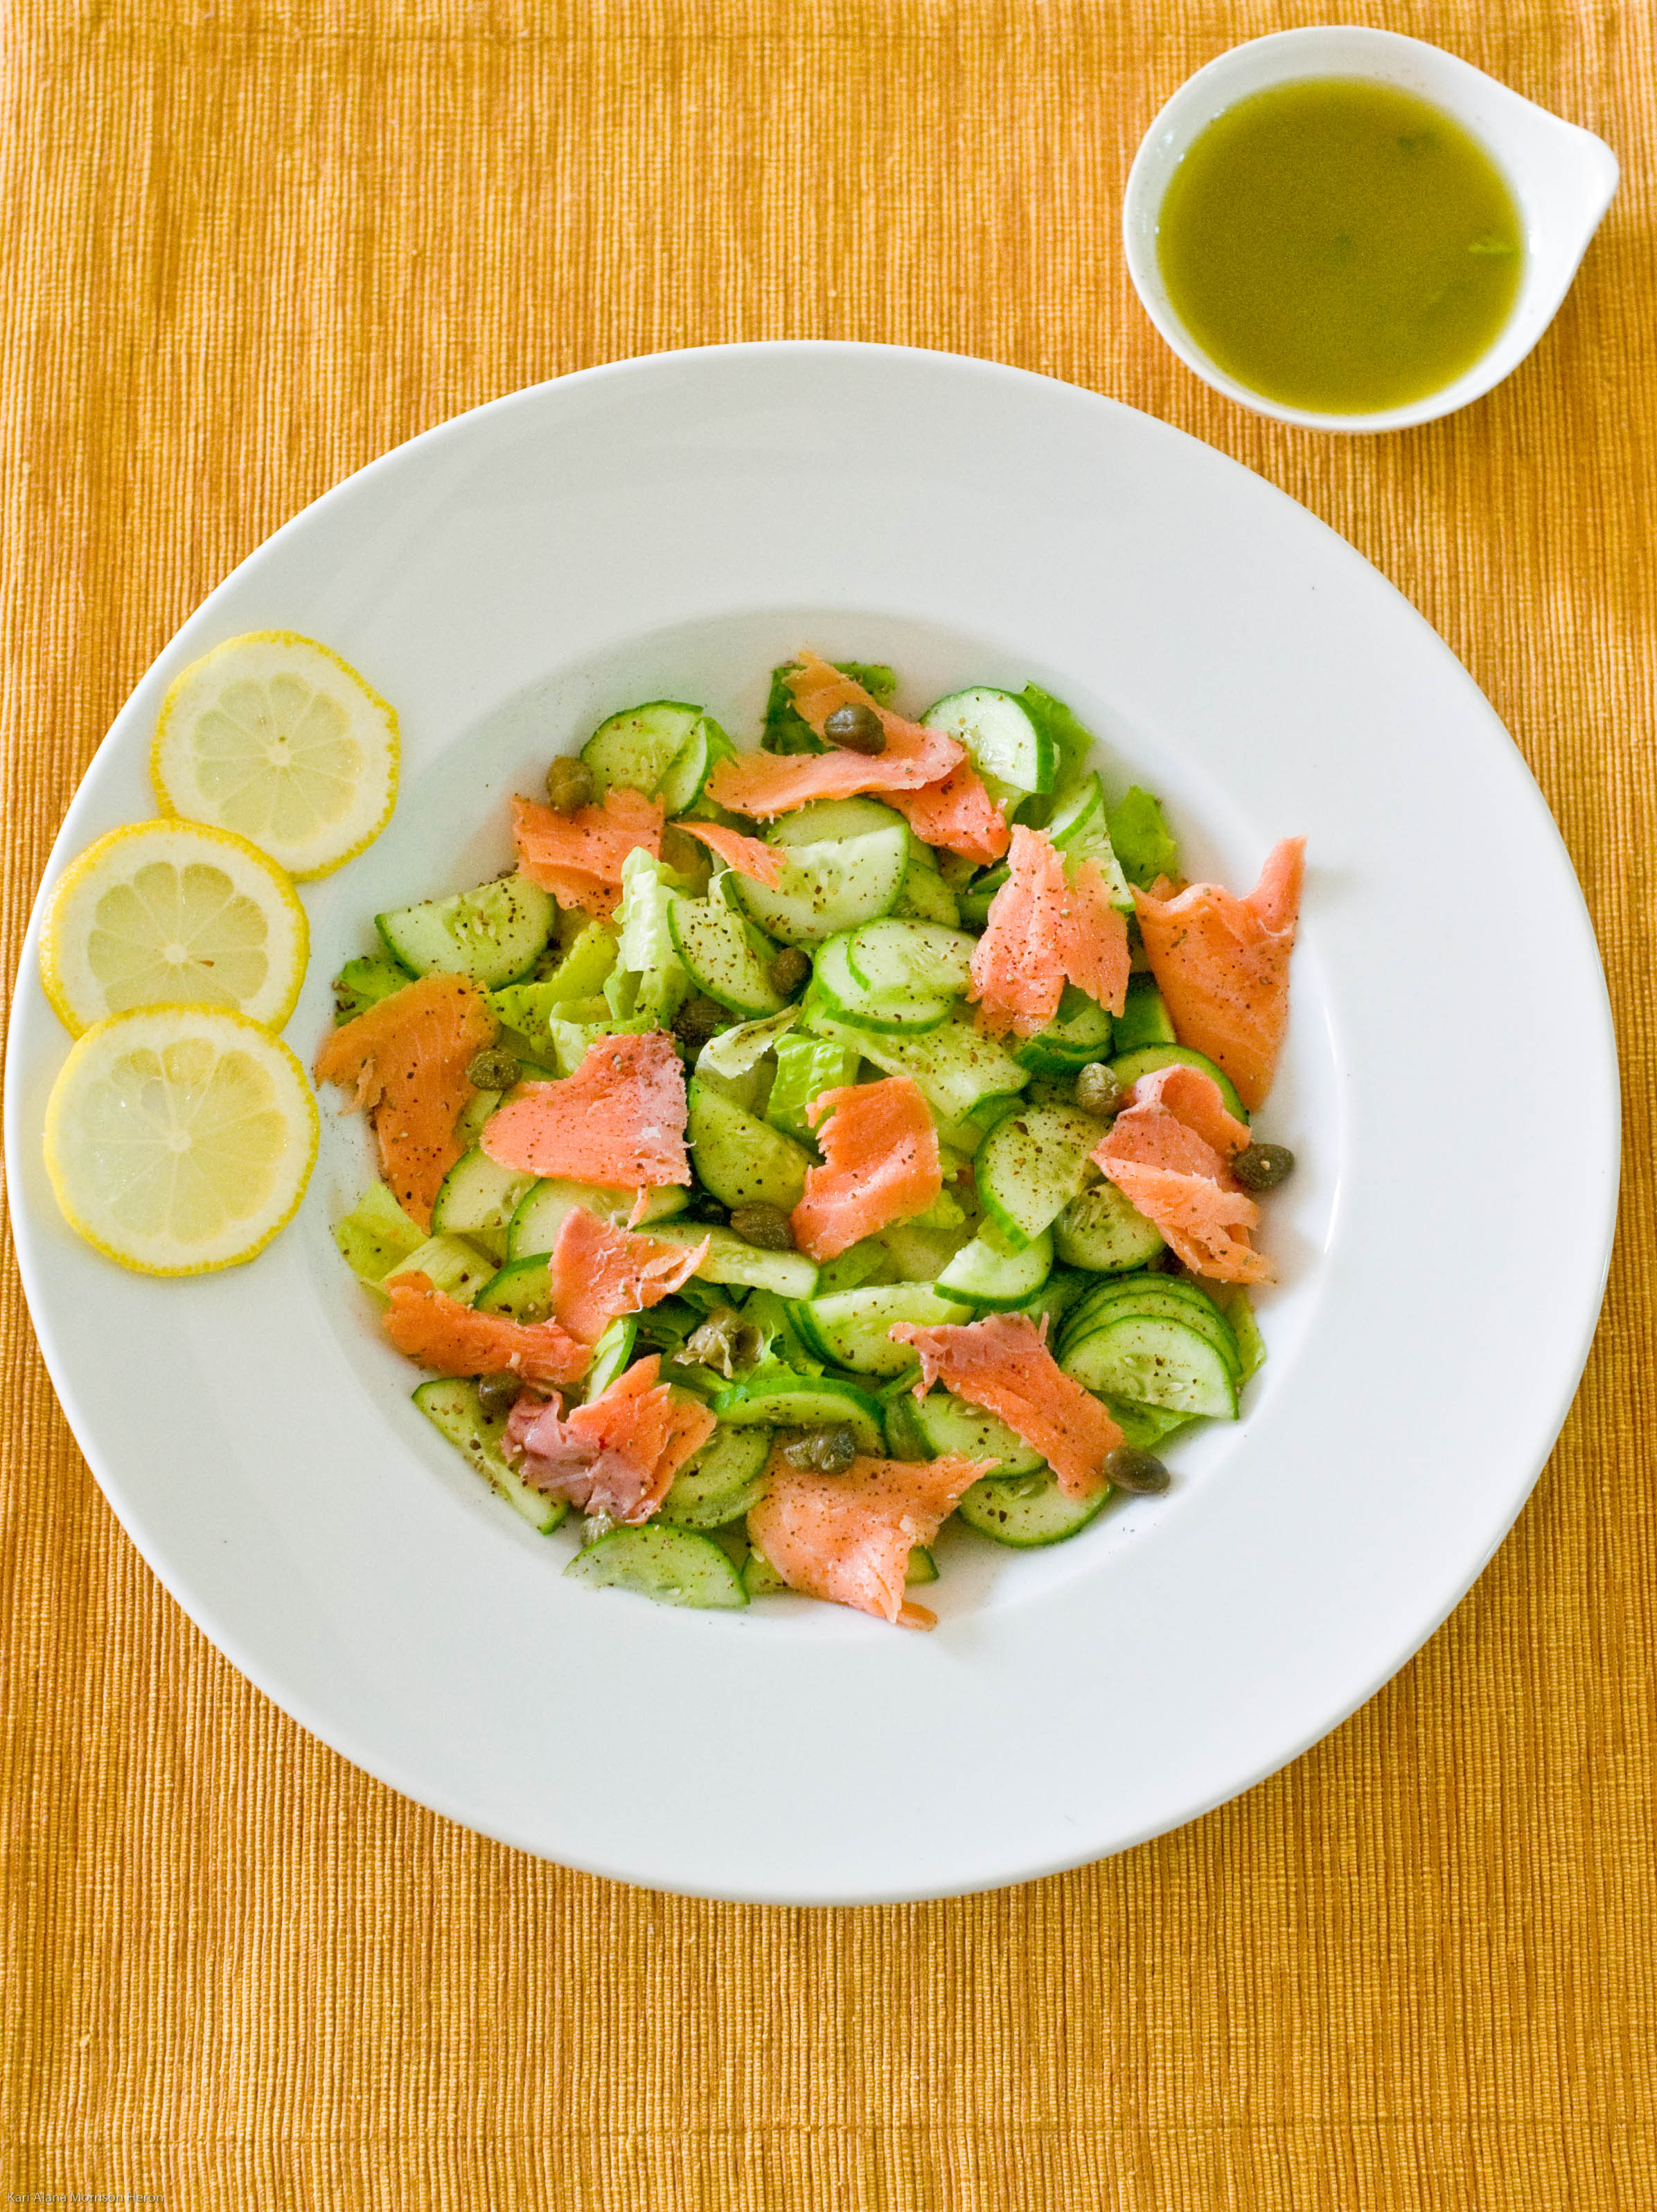 Salad as a Meal- Smoked Salmon, Capers & Cucumbers with a Lemon Dill ...